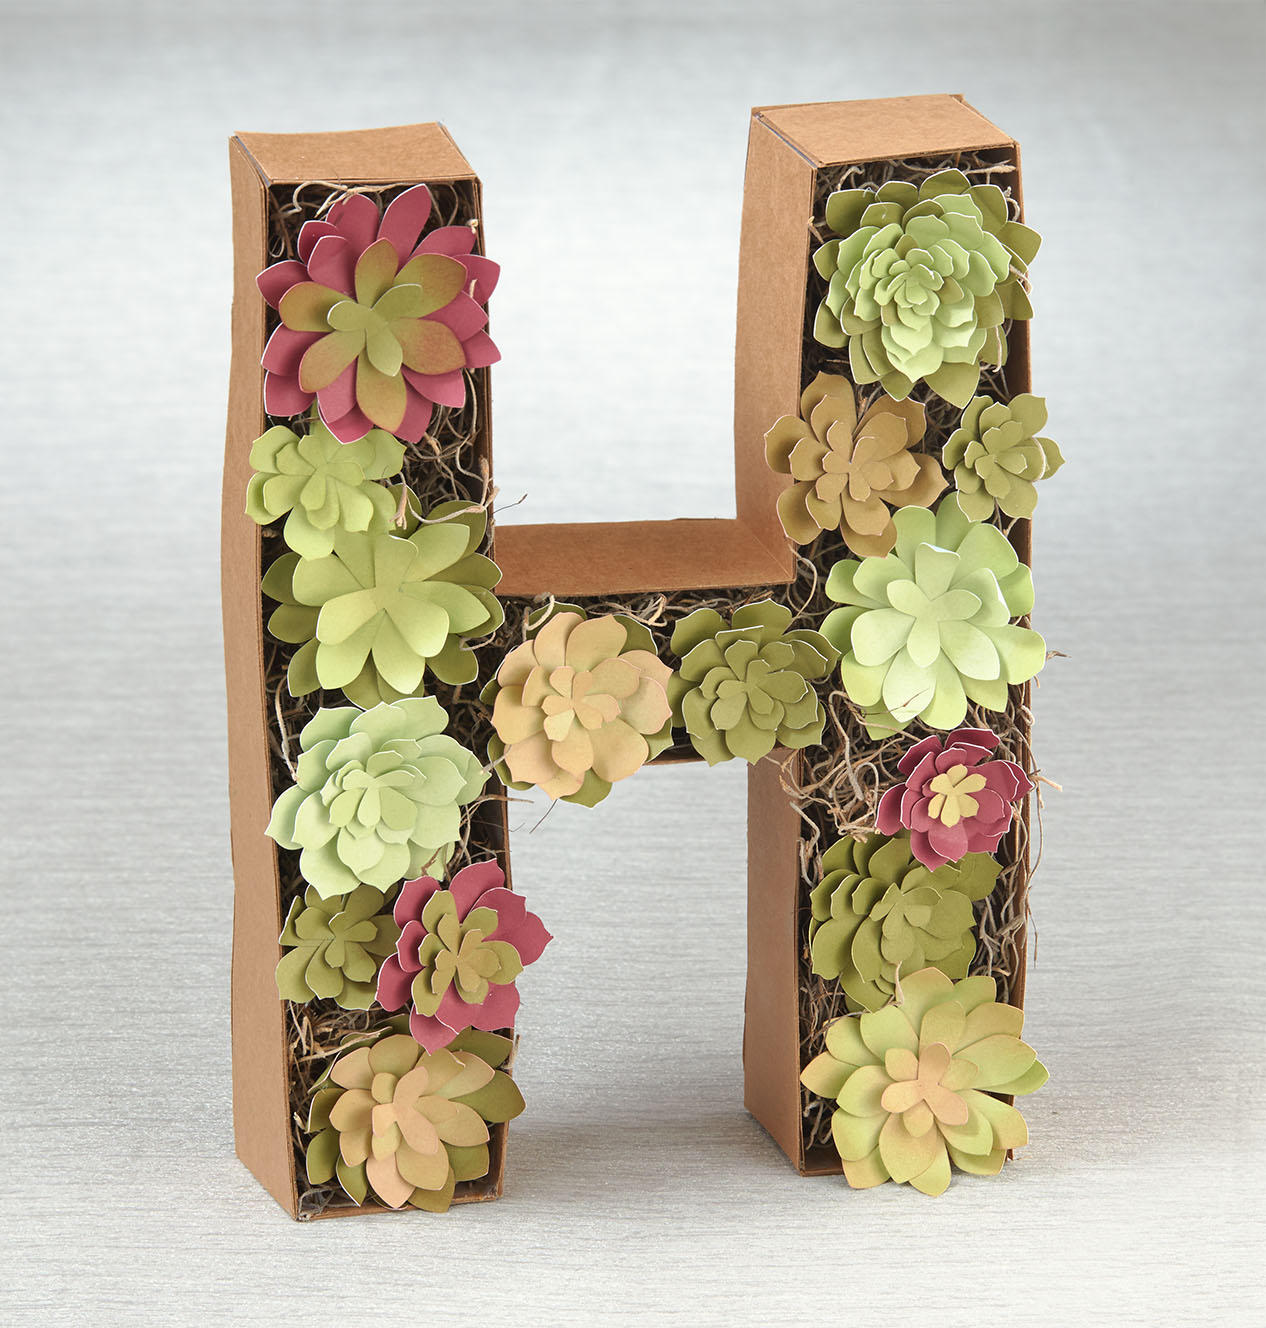 Bteajans Home Decor Blog: Paper Succulents Made Easy